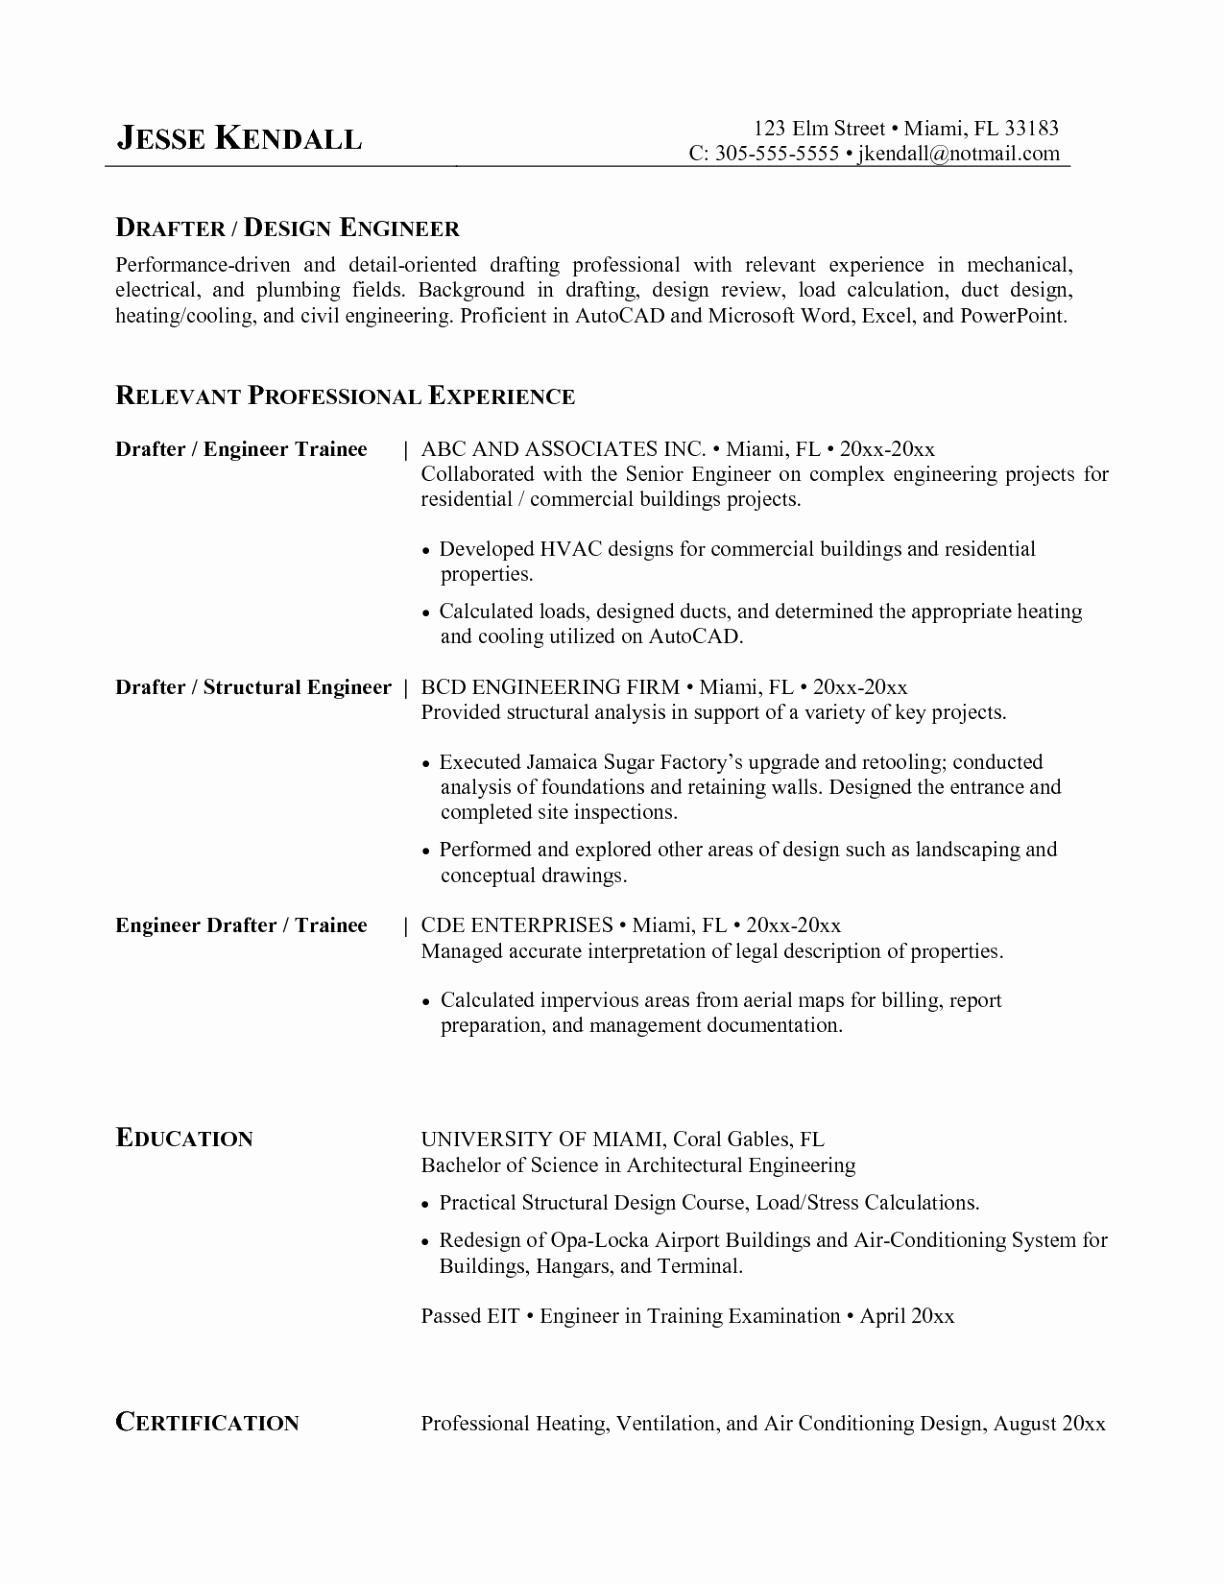 50 New Cover Letter For Electrical Engineer Fresh Graduate with Pics